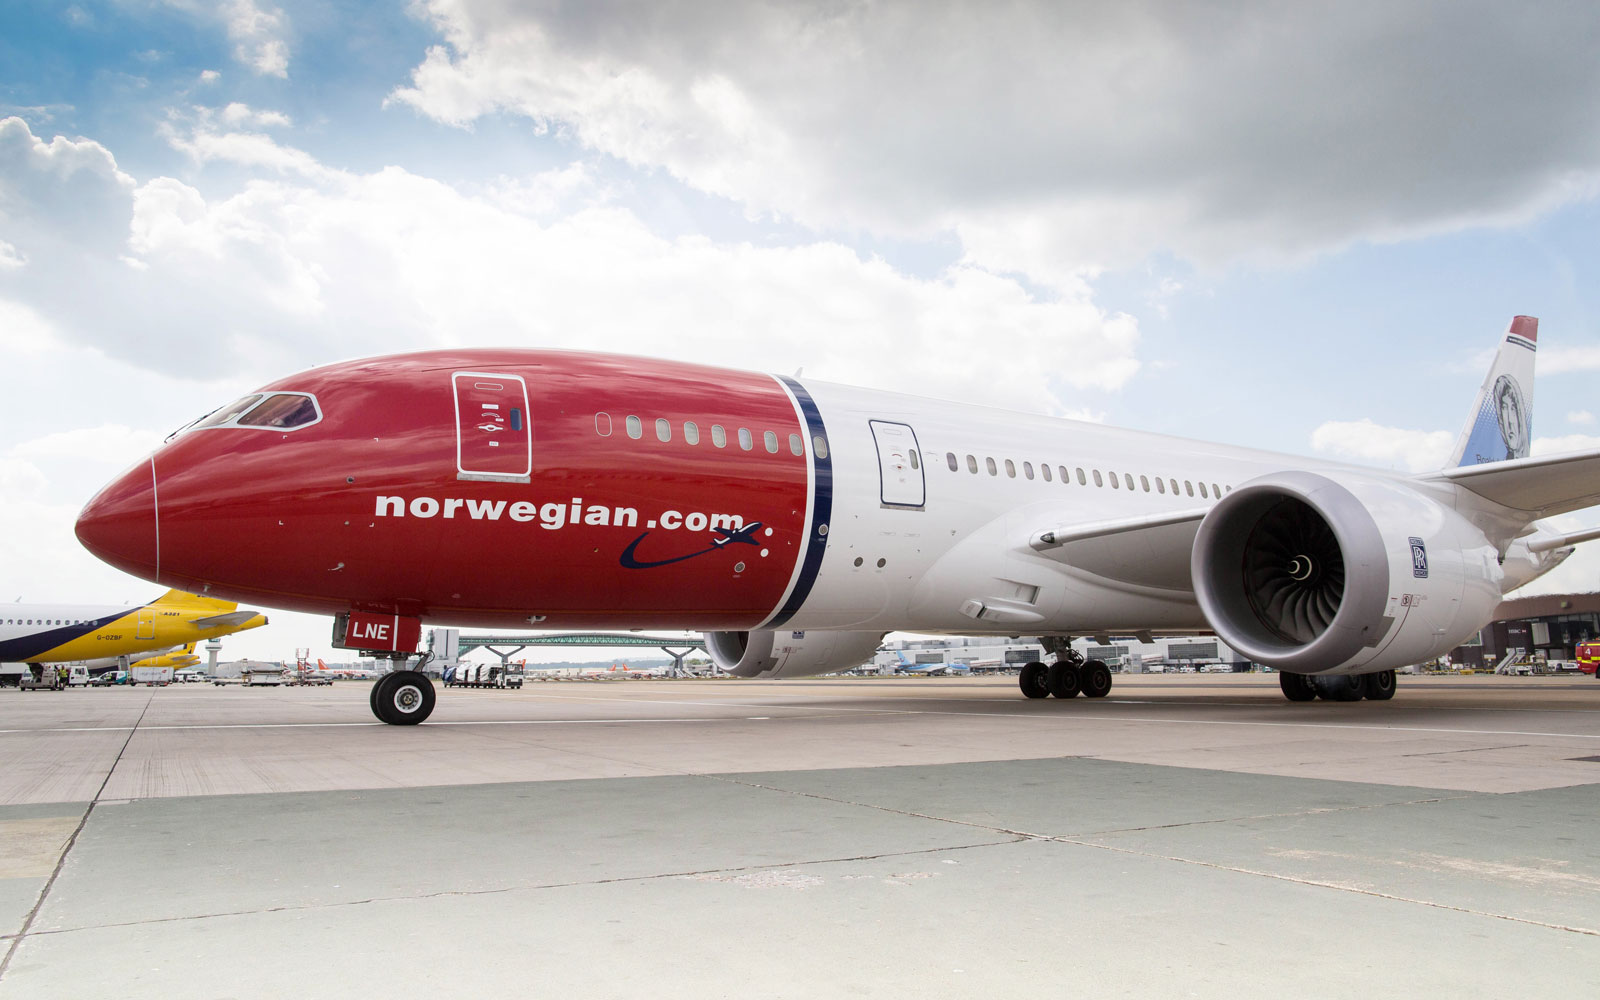 Norwegian Air Gets Go-ahead for Super-cheap Flights From the U.S. to U.K.